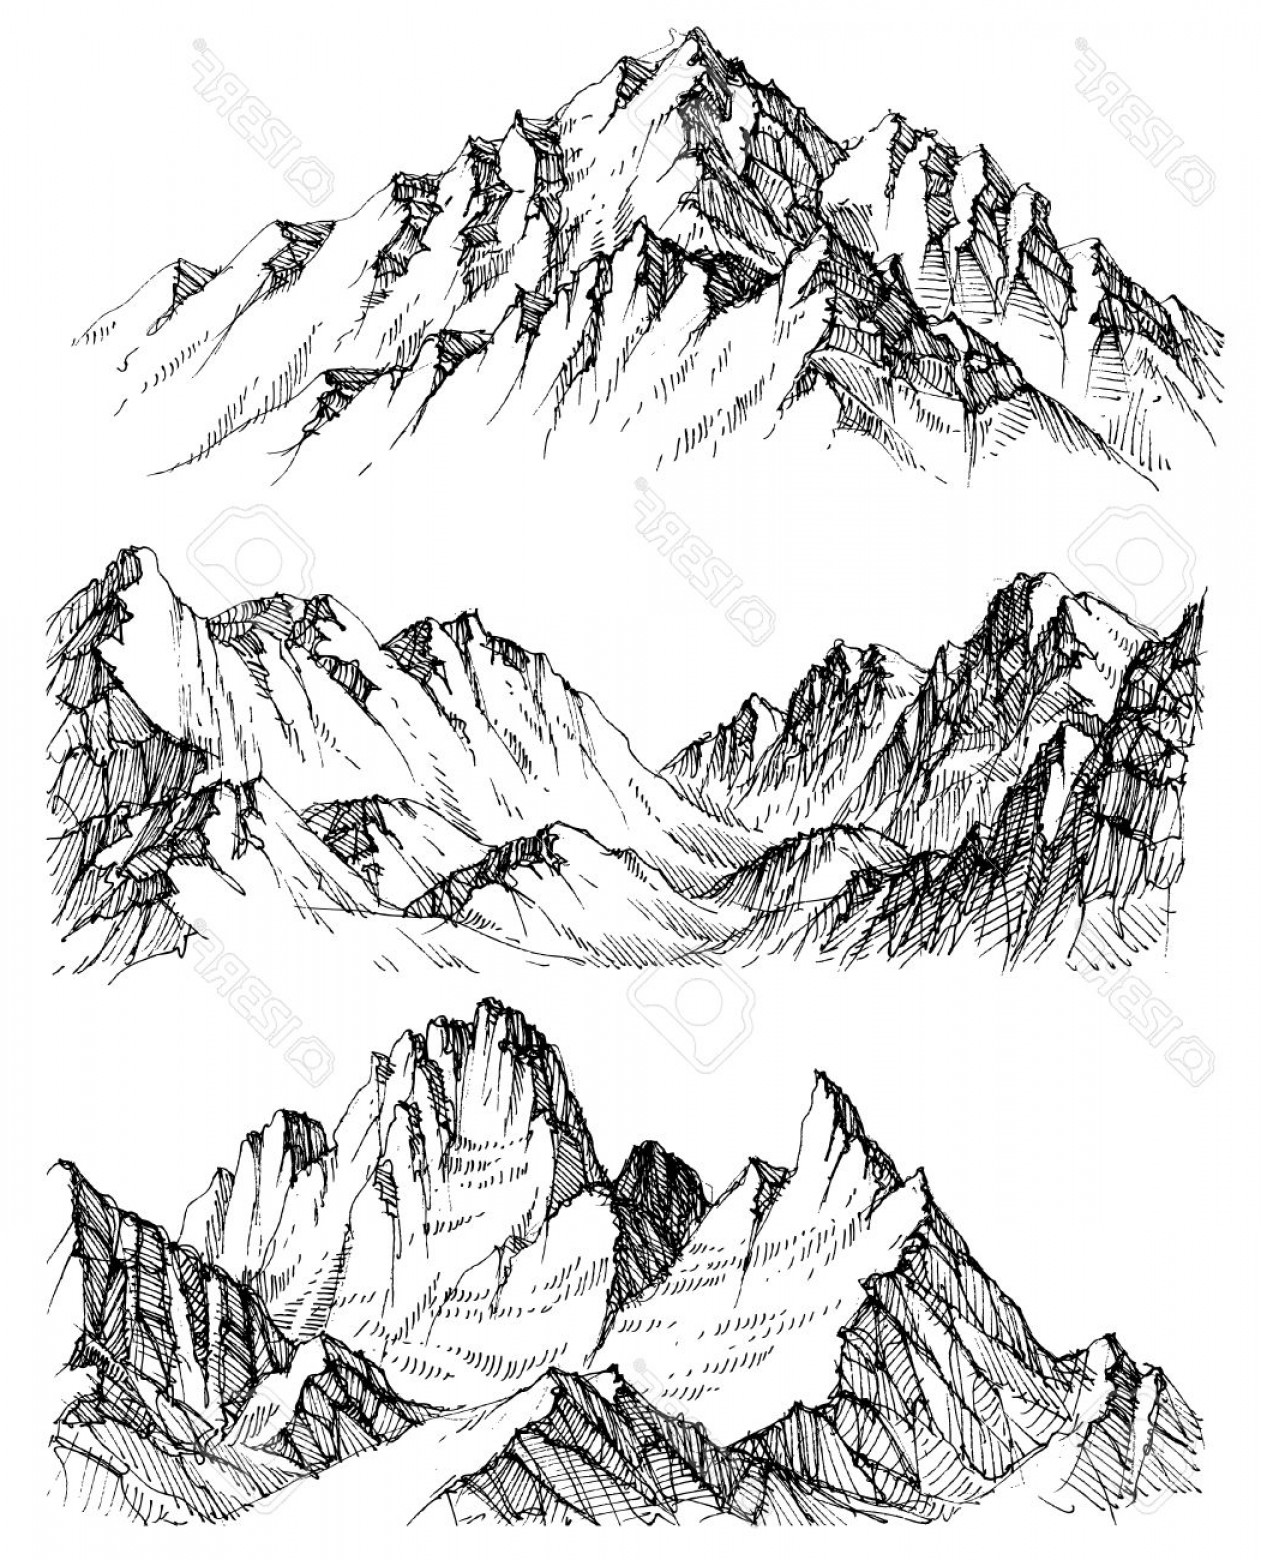 Rocky Mountain Line Art Vector: Photostock Vector Mountains Vector Set Hand Drawn Rocky Peaks